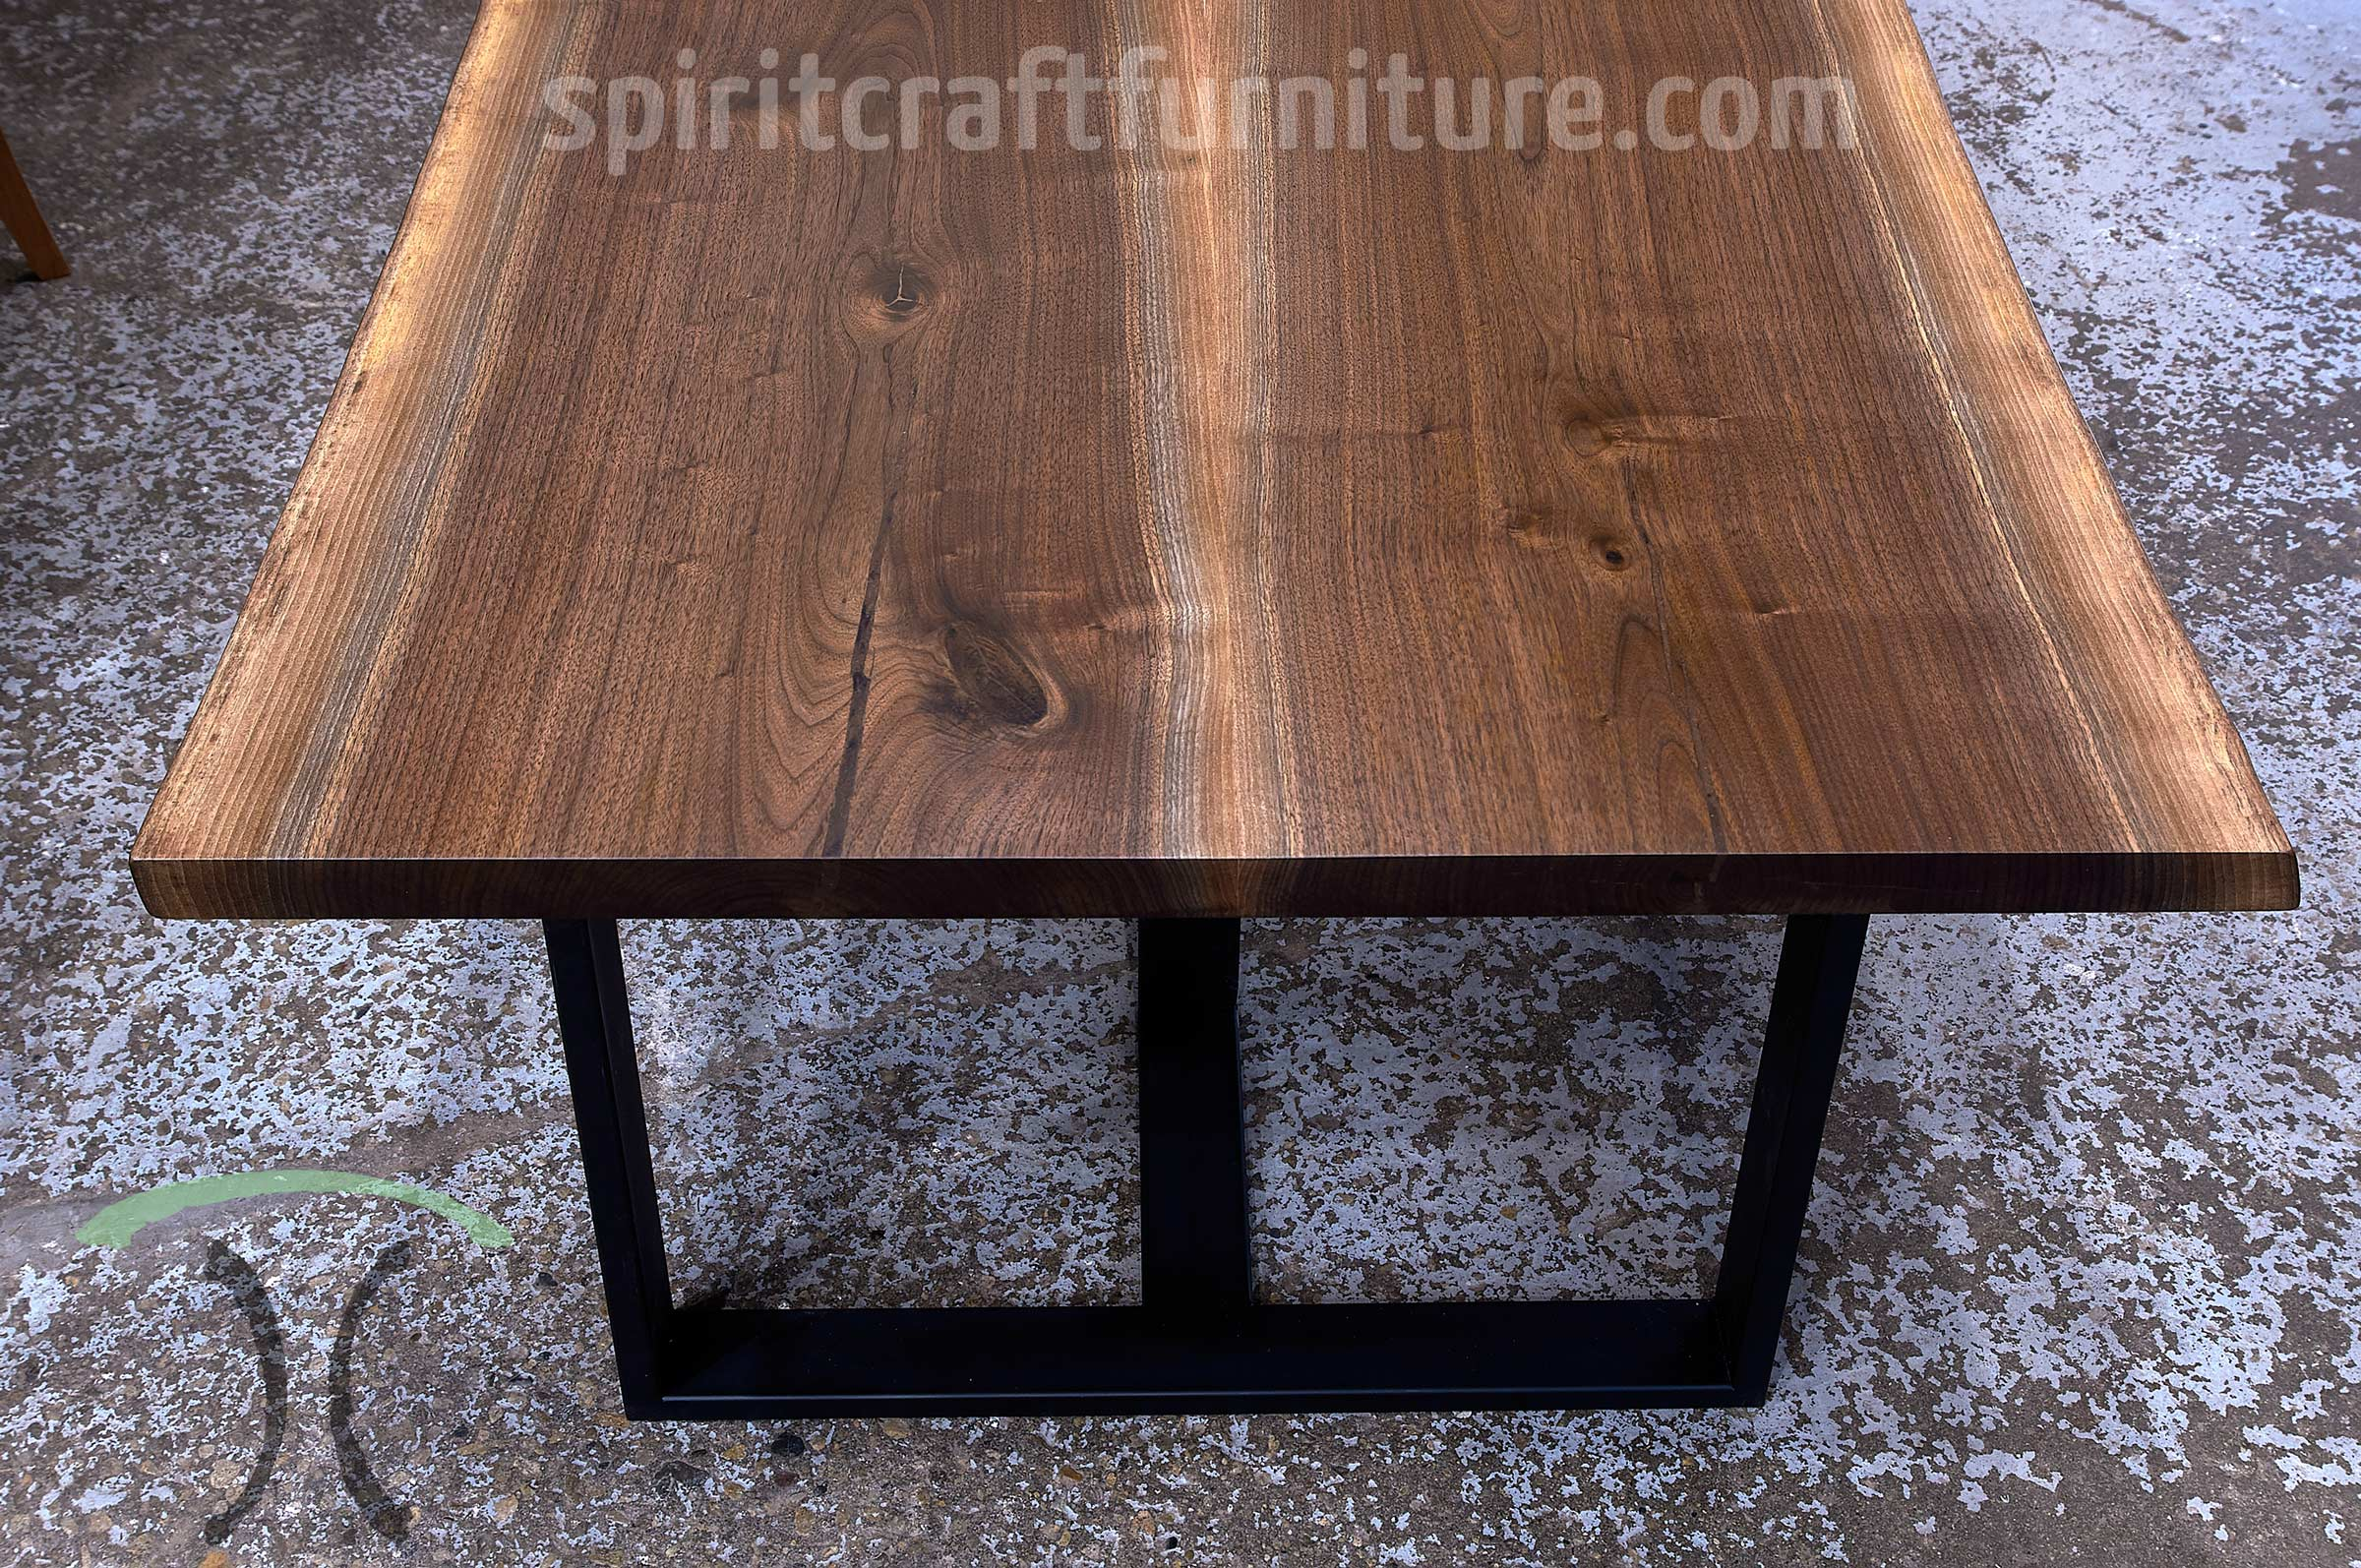 Black Walnut Live Edge Conference Table with Steel Tri Legs for Chicago area Corporate Headquarters, Handcrafted by Spiritcraft Furnitue in East Dundee, Illinois